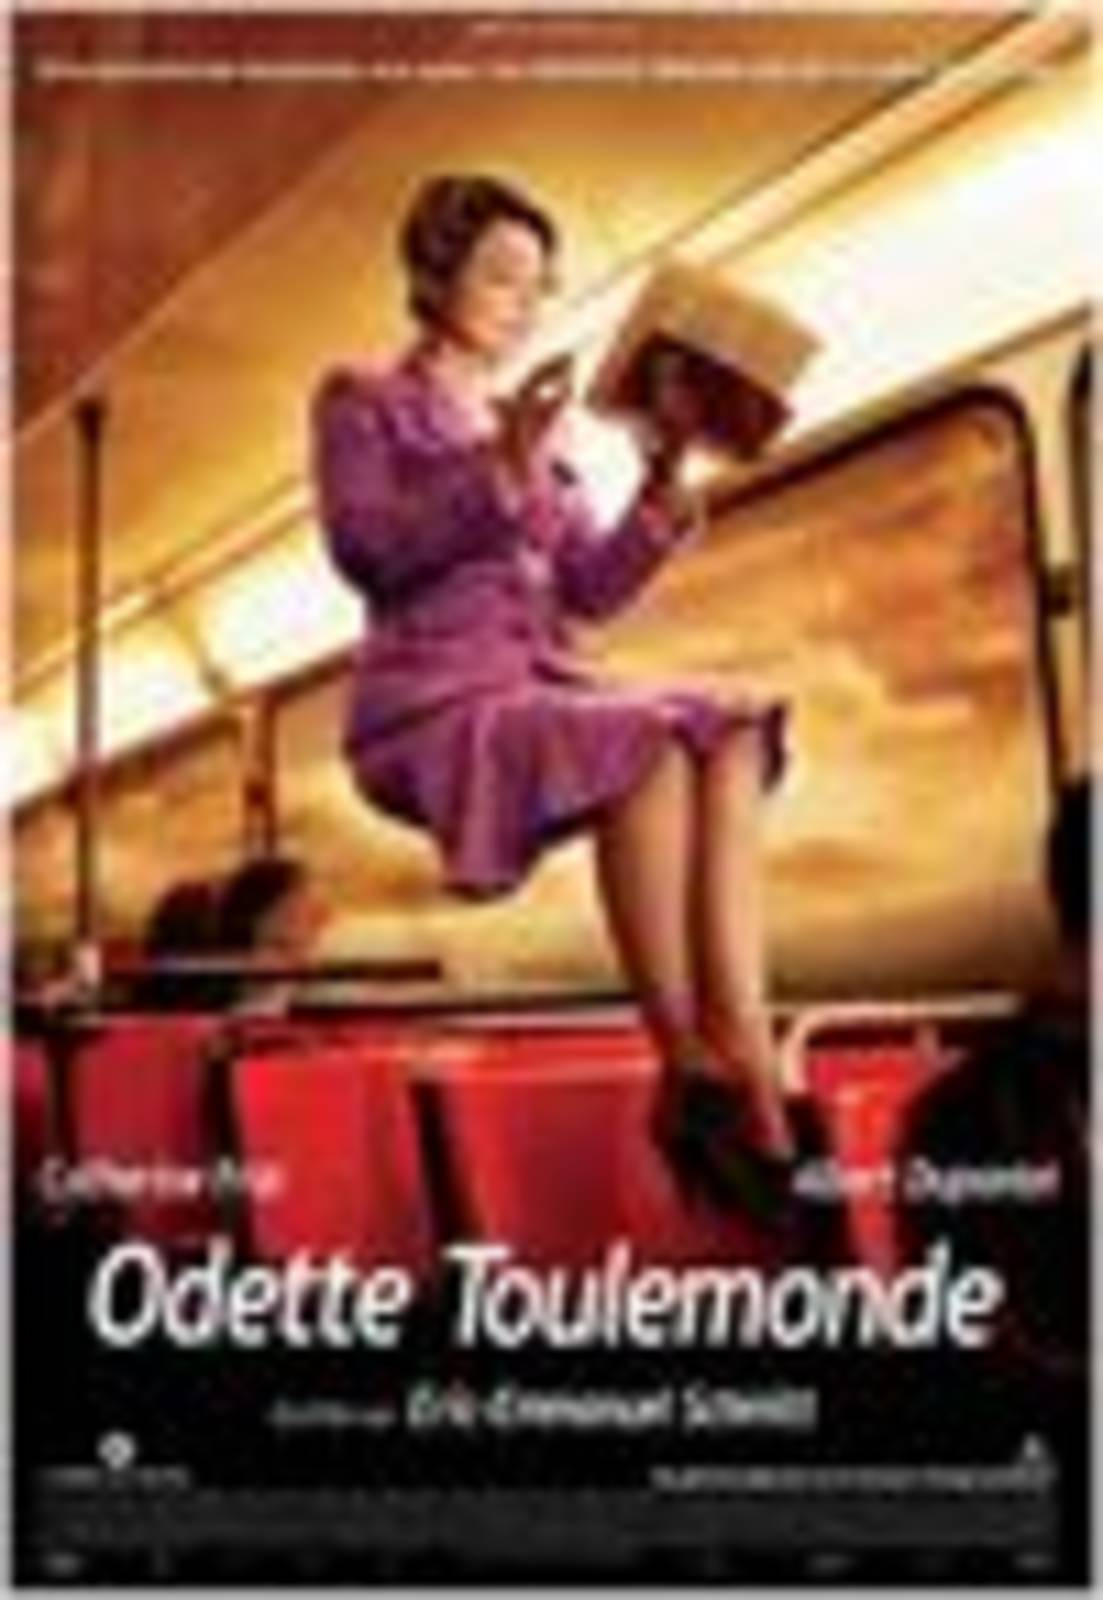 film odette toulemonde cineman